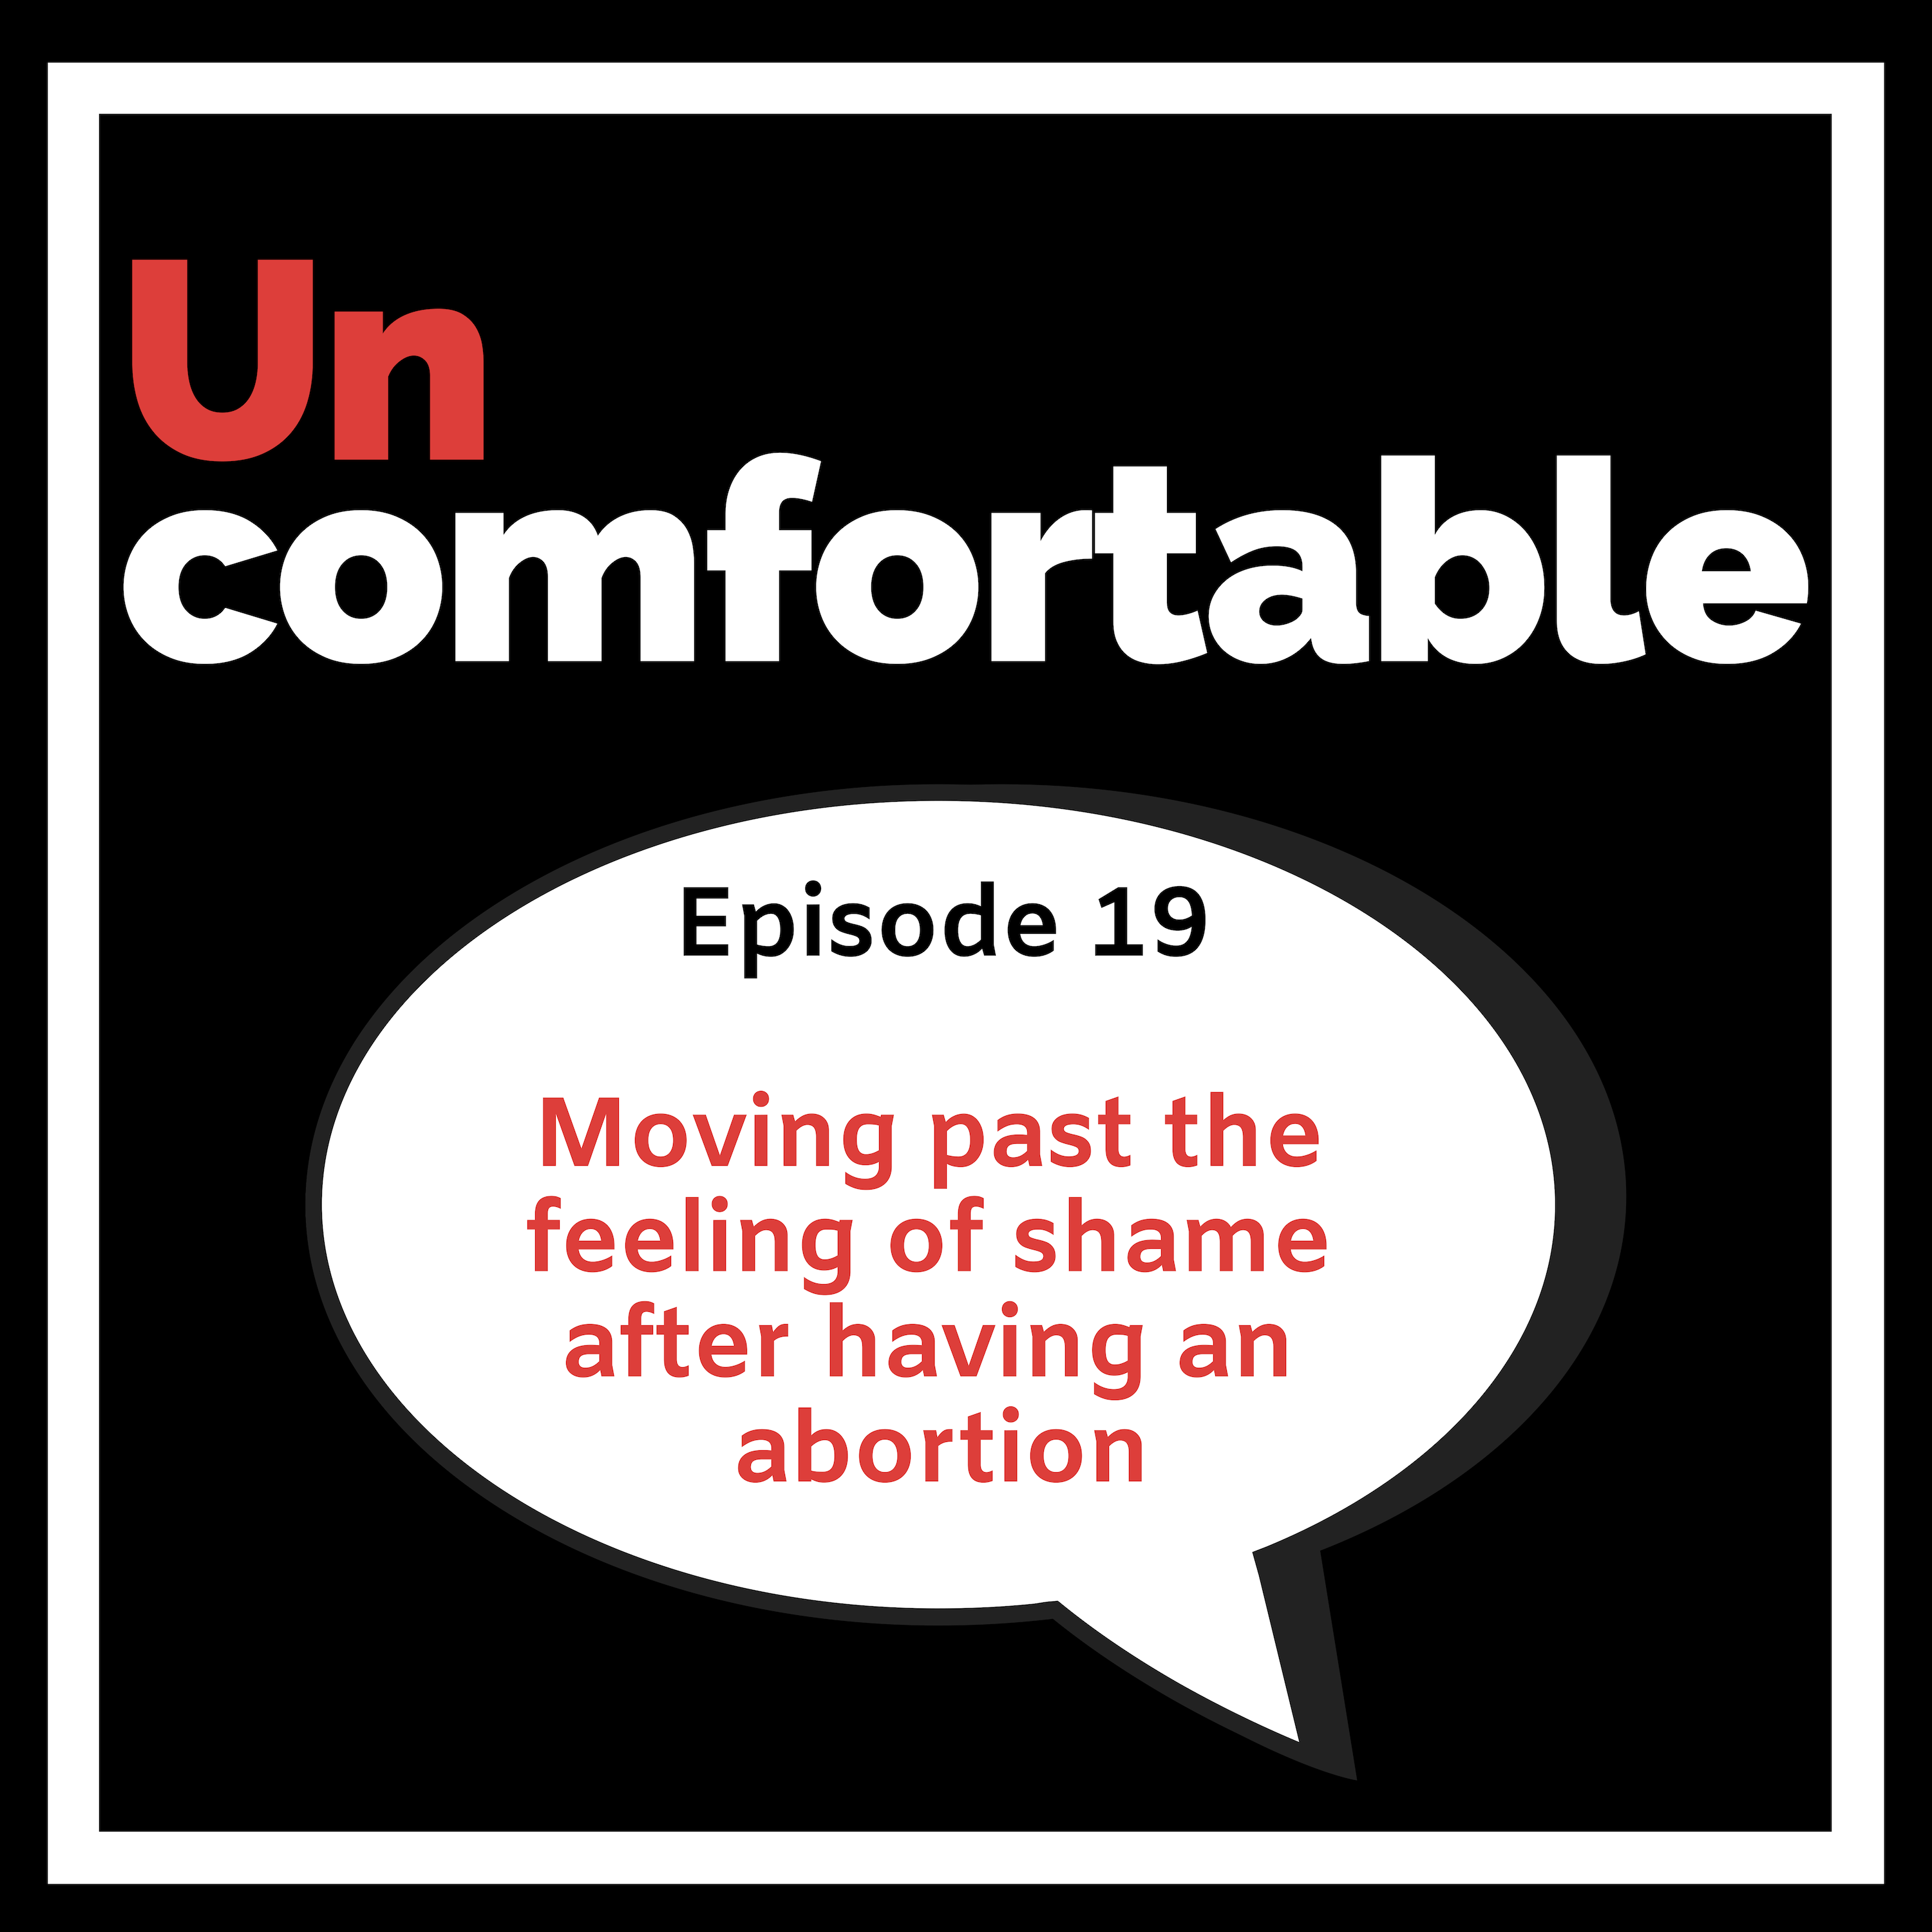 Episode 19 - Moving past the feeling of shame after having an abortion